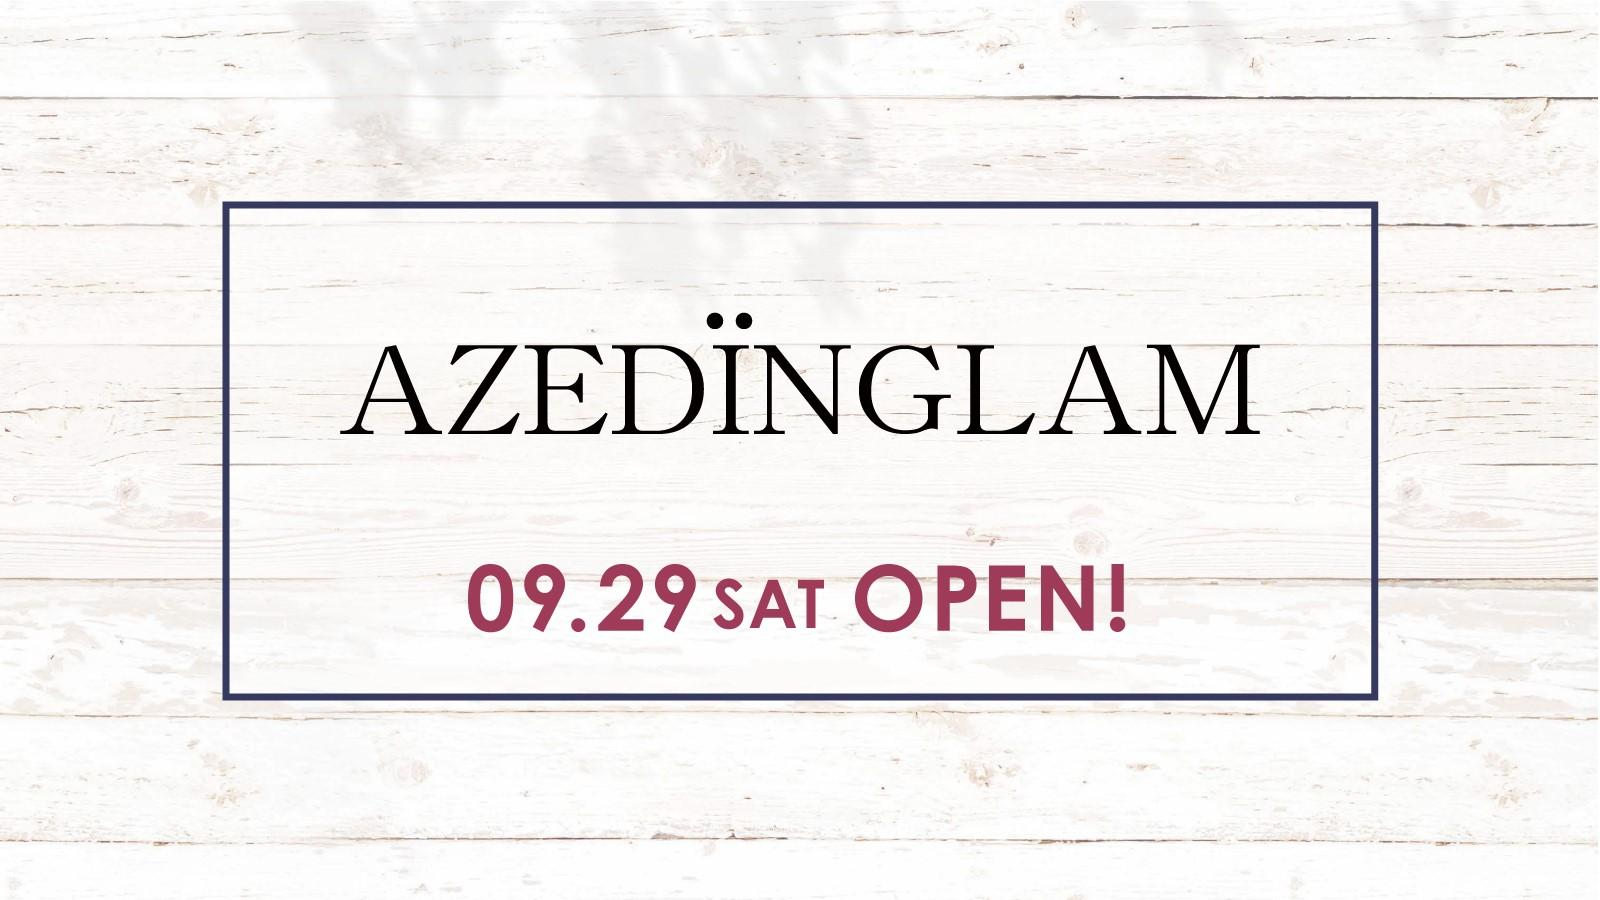 NEW OPEN ! 09.29 SAT 「AZEDÏNGLAM」